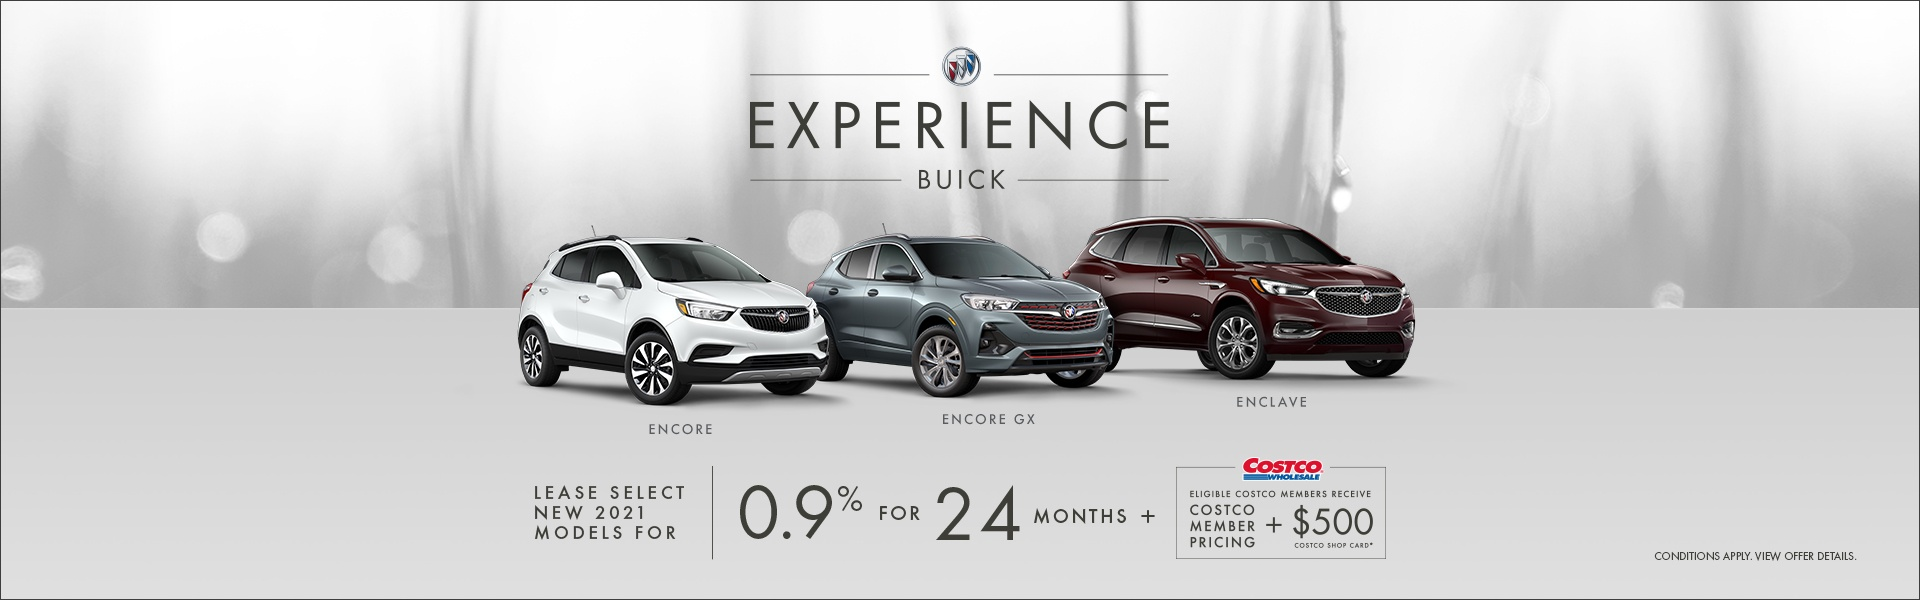 Central - Buick LineUp - English